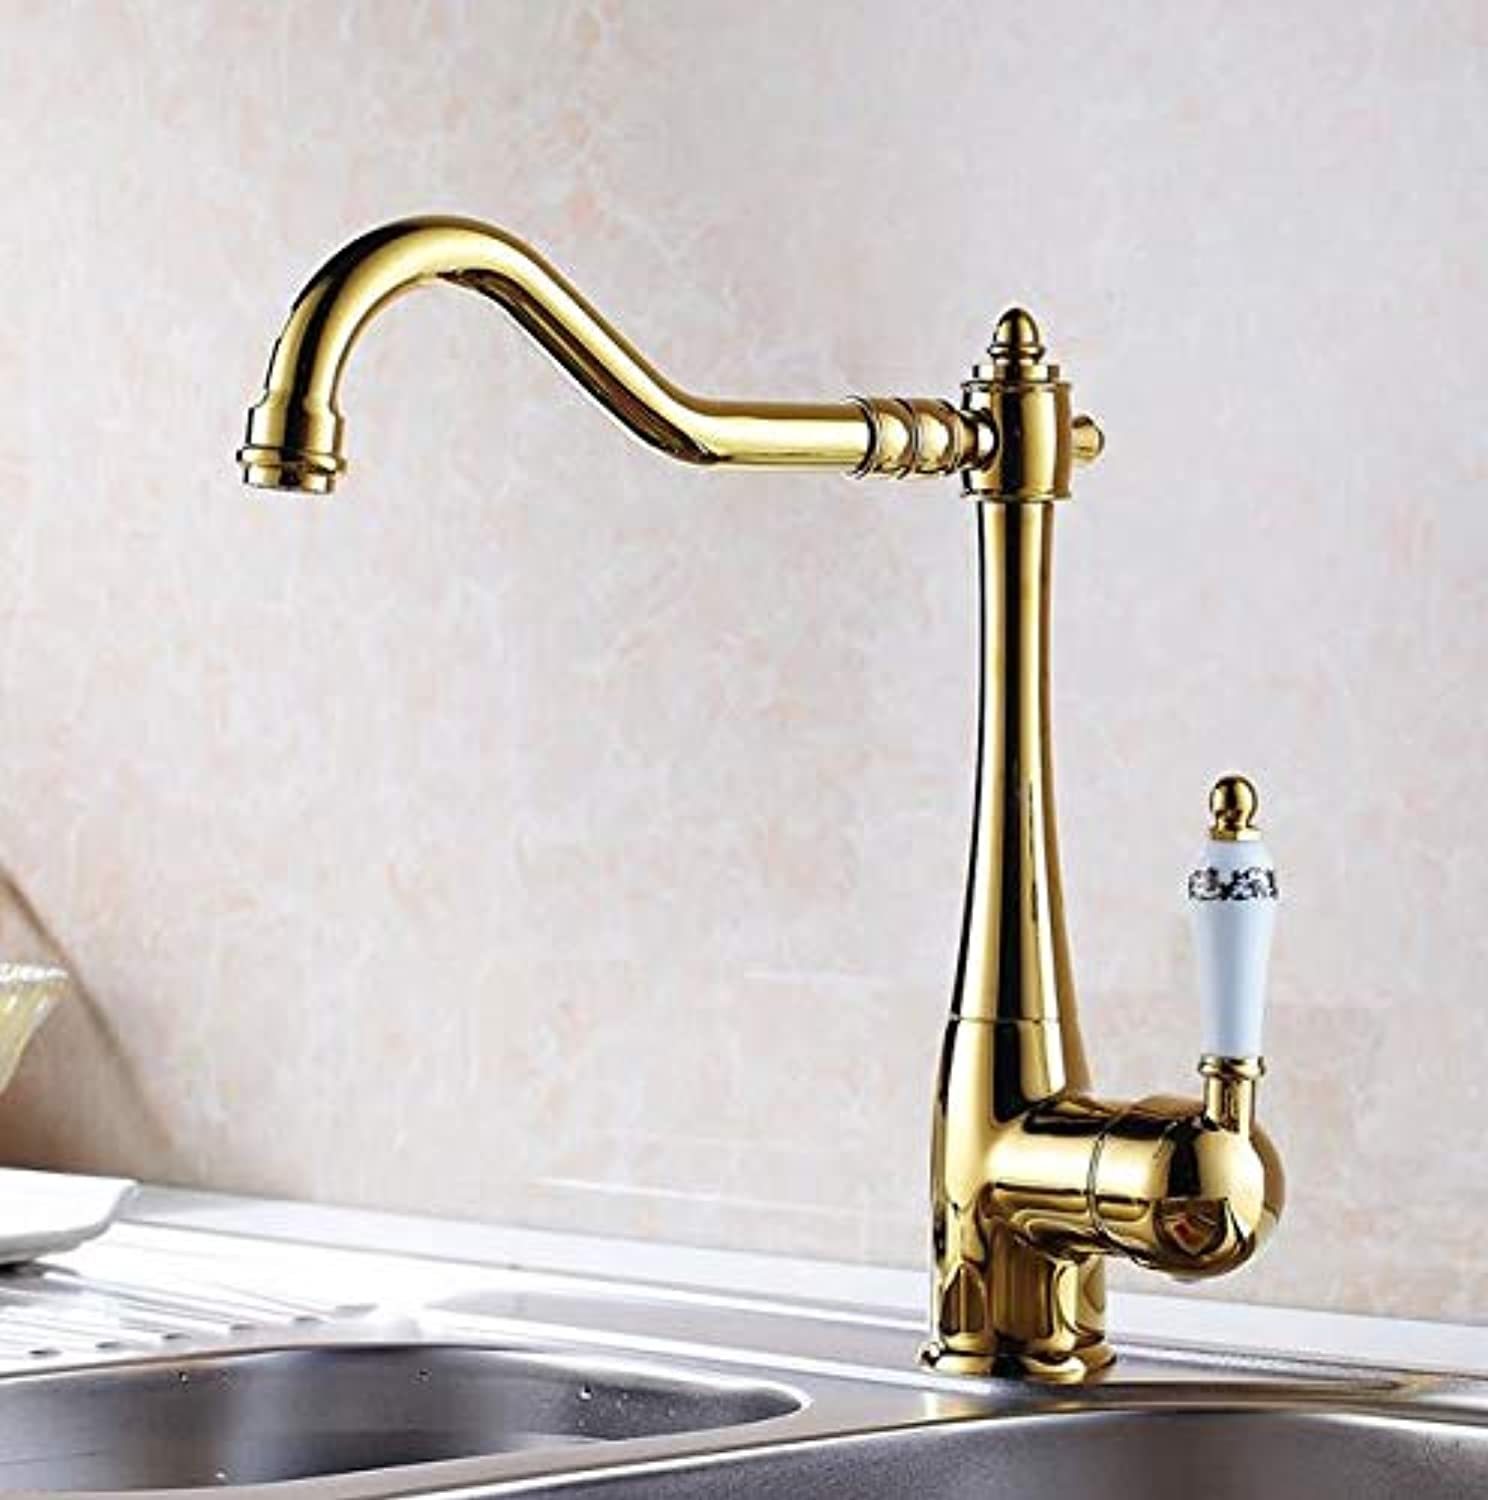 Mkkwp Kitchen Faucets Single Holder Single Hole Kitchen Sink Faucet Swivel Spout Ceramic Handle Chrome Brass Mixer Water Taps